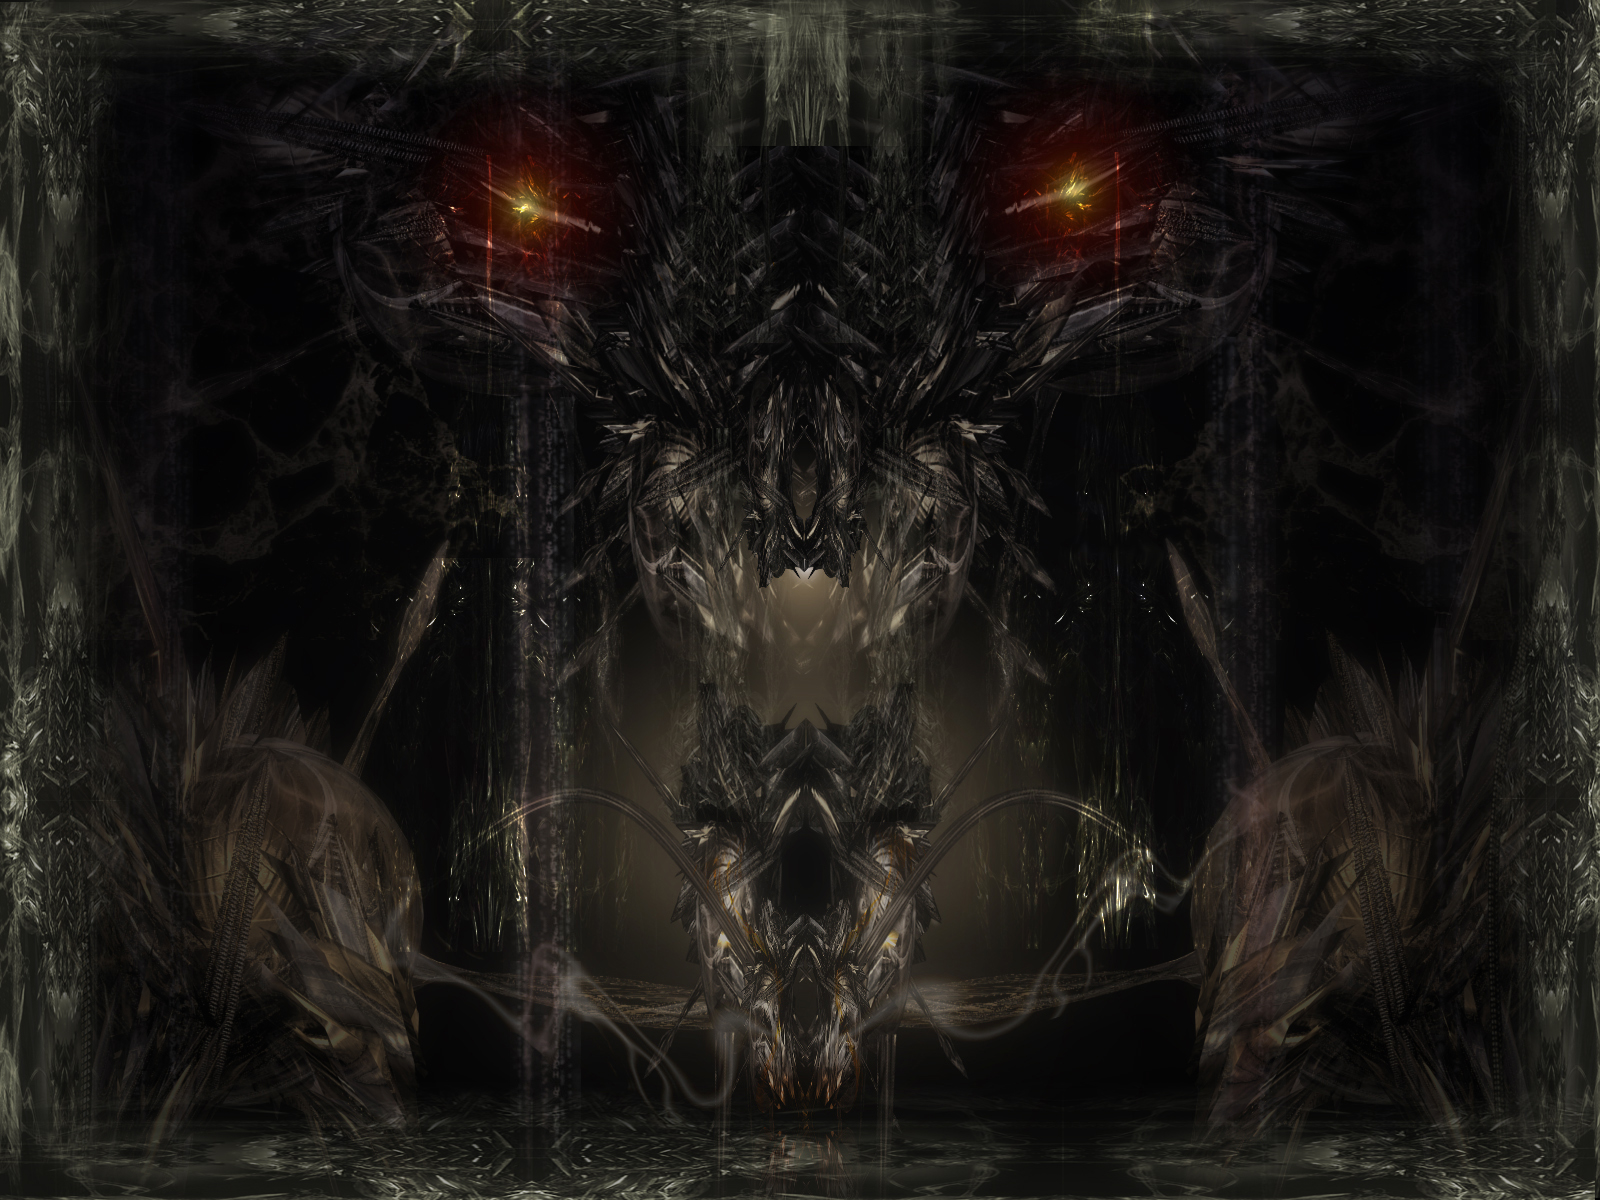 abstract DarkArt Gothic Wallpapers mixed HQ wallpapers 13jpg dogs of 1600x1200